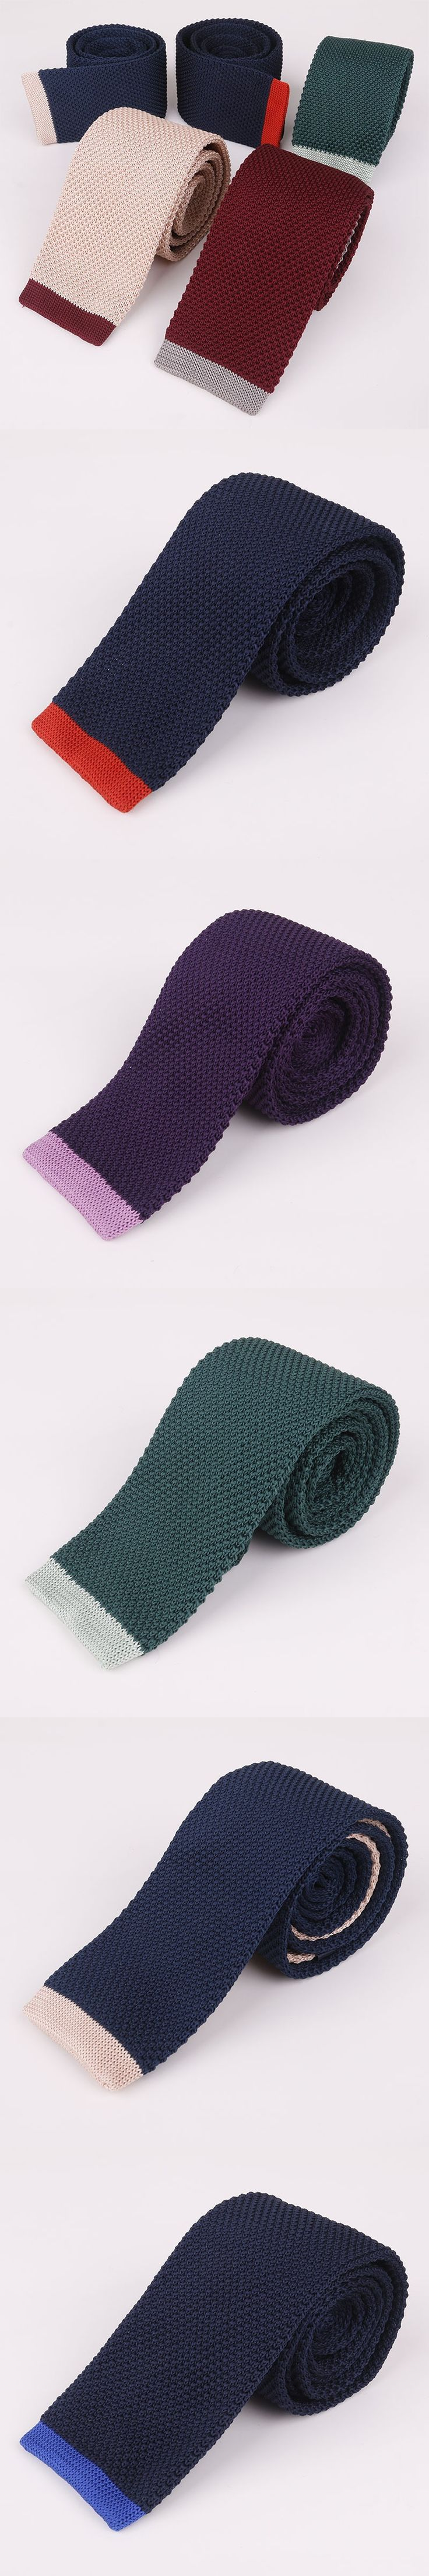 Mantieqingway Men's Suits Knitted Ties for Wedding Skinny Knitting Necktie Male Suits Woven Vestidos of Corbatas Collar Tie